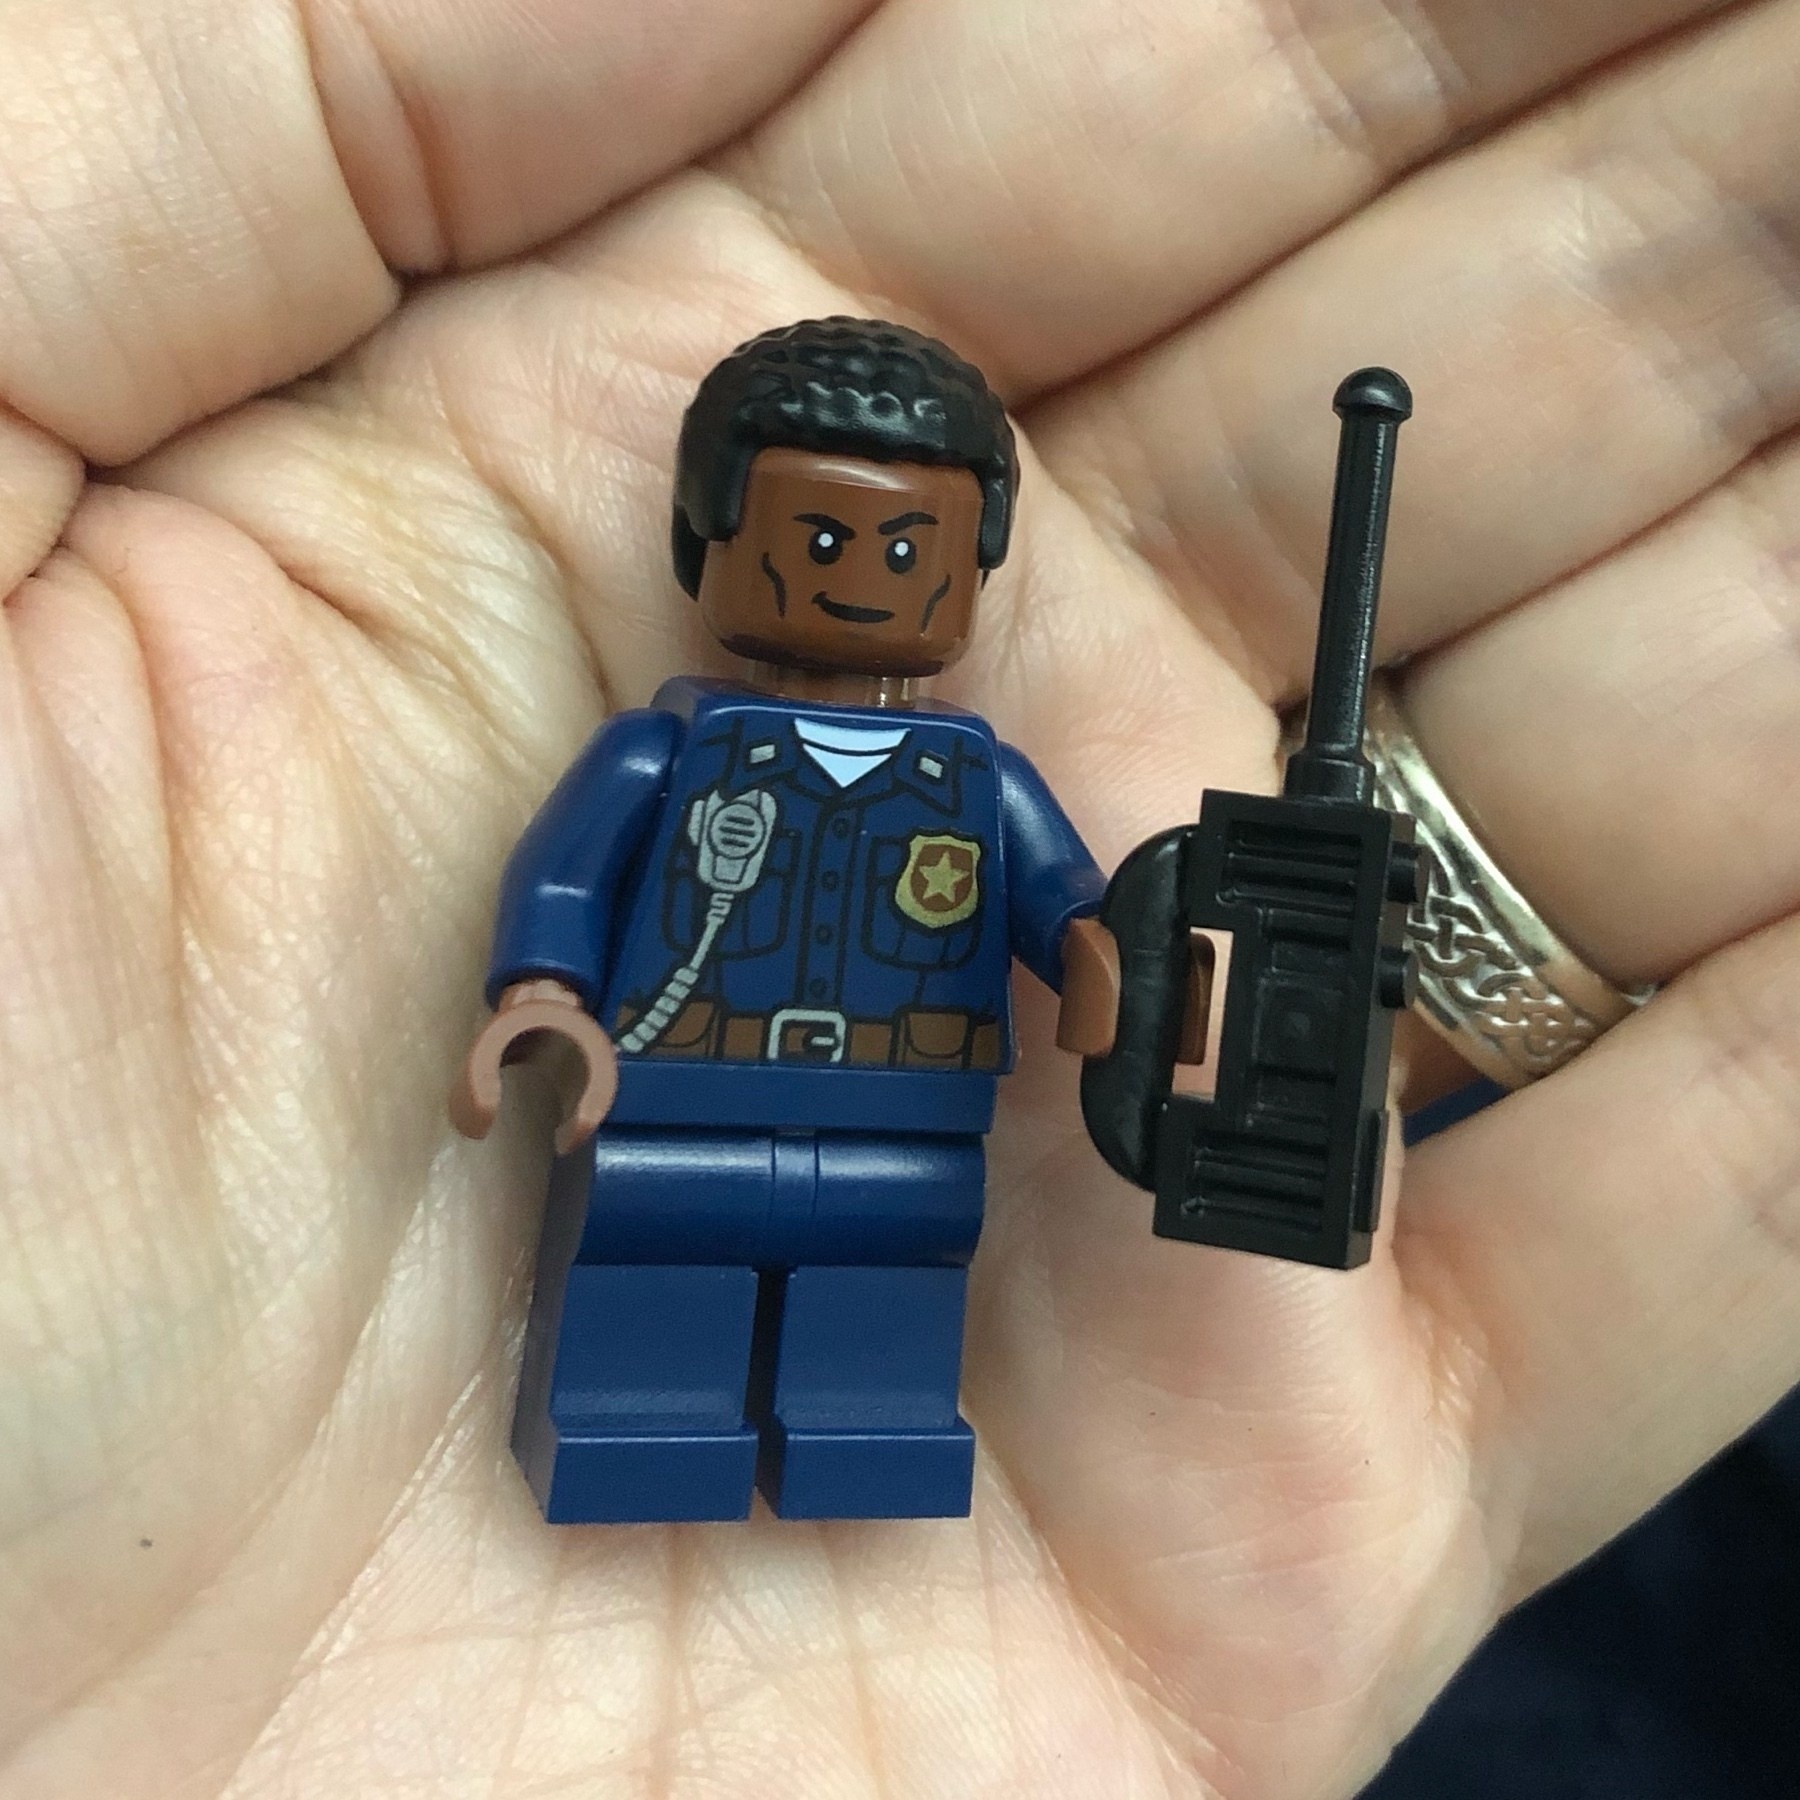 A LEGO minifig of a black policeman. He's holding a walkie talkie